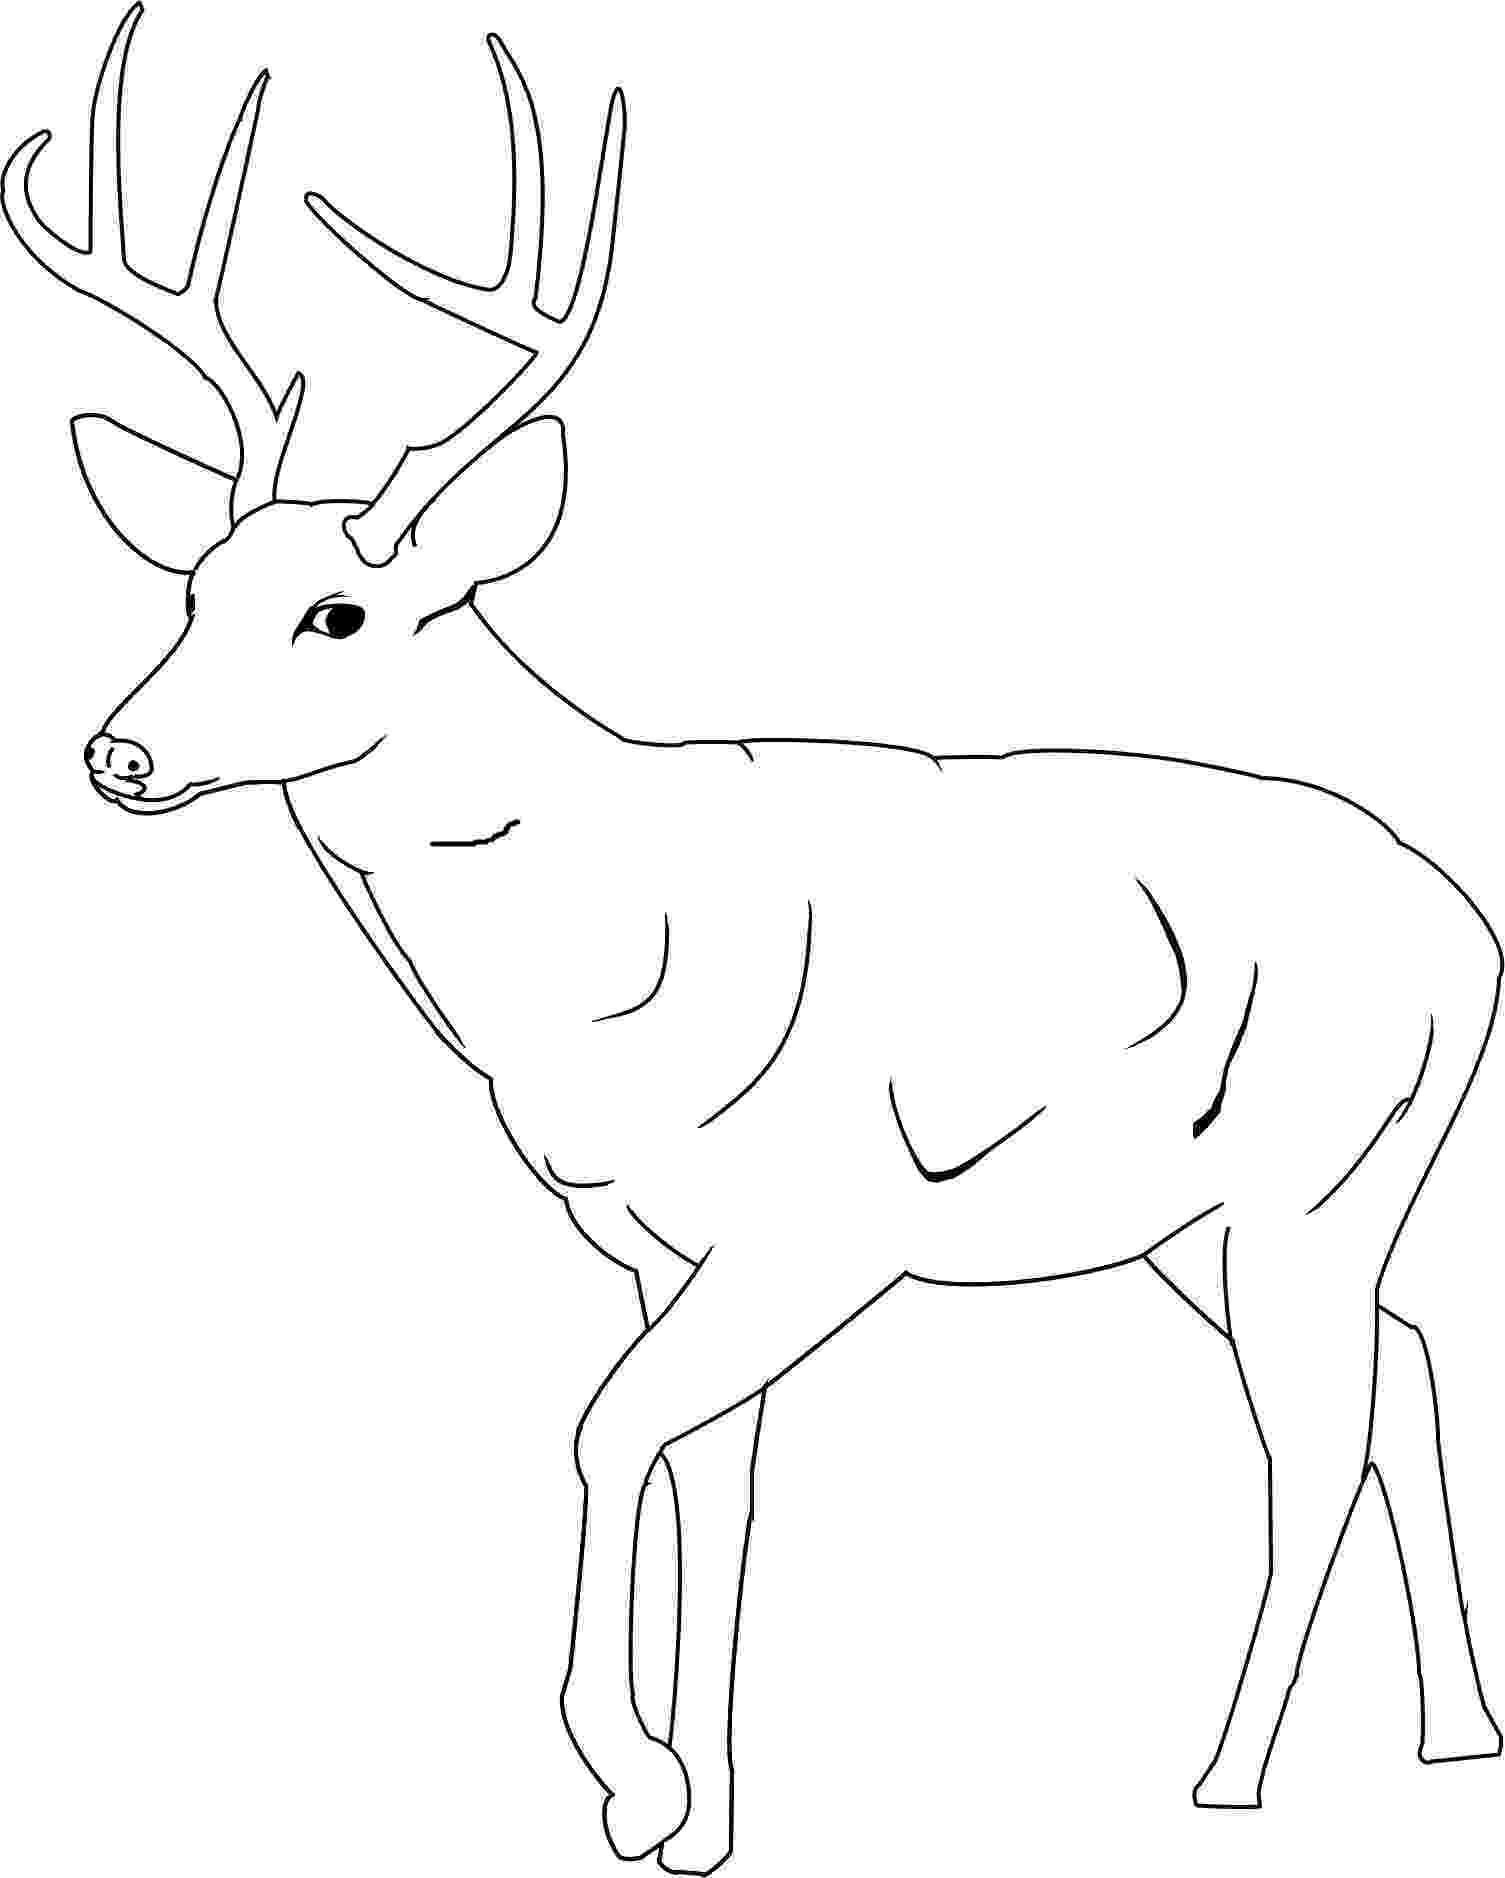 pictures of deers to color top 20 deer coloring pages for your little ones color pictures deers to of